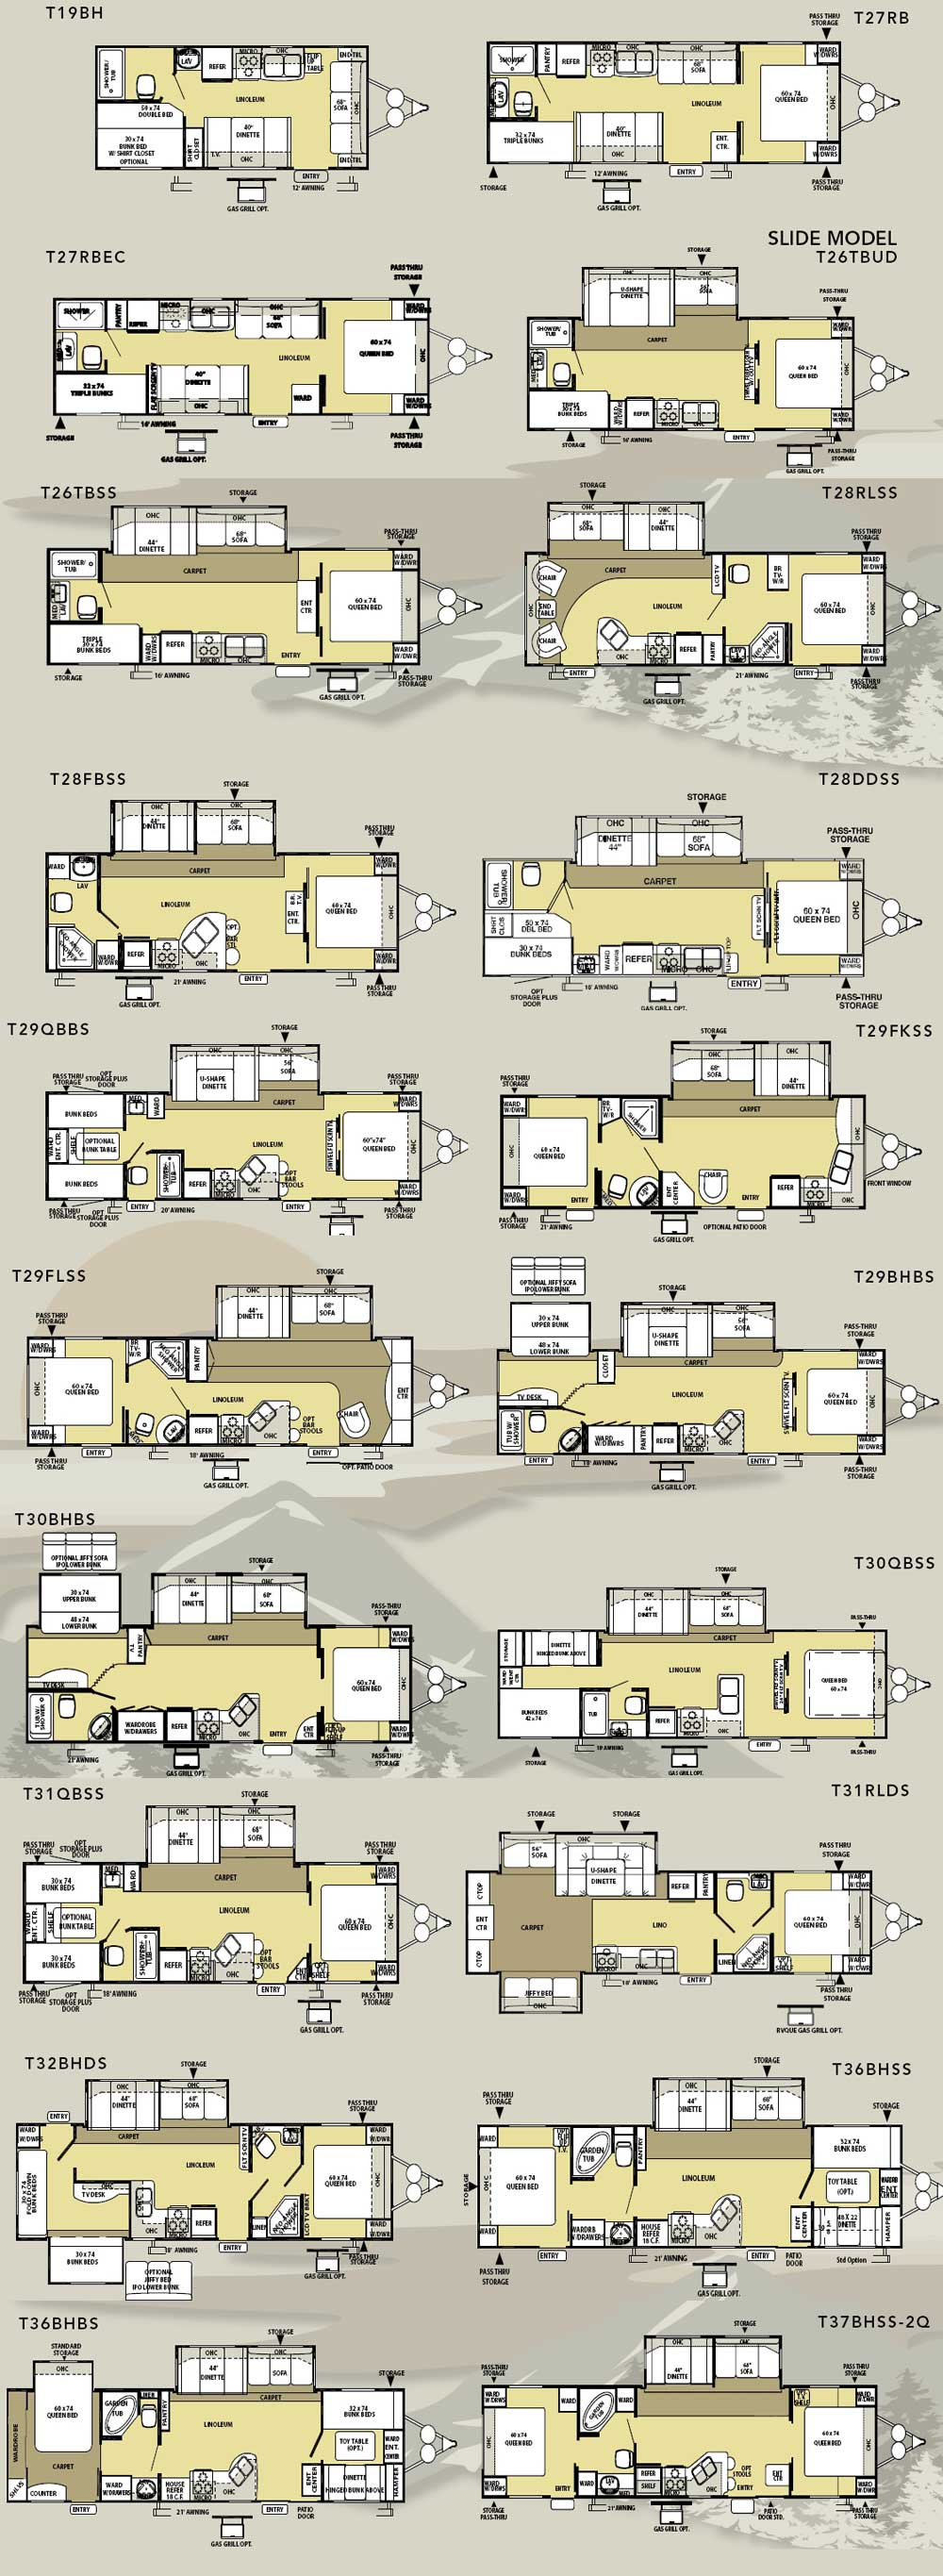 Forest River Salem Le Travel Trailer Floorplans Large